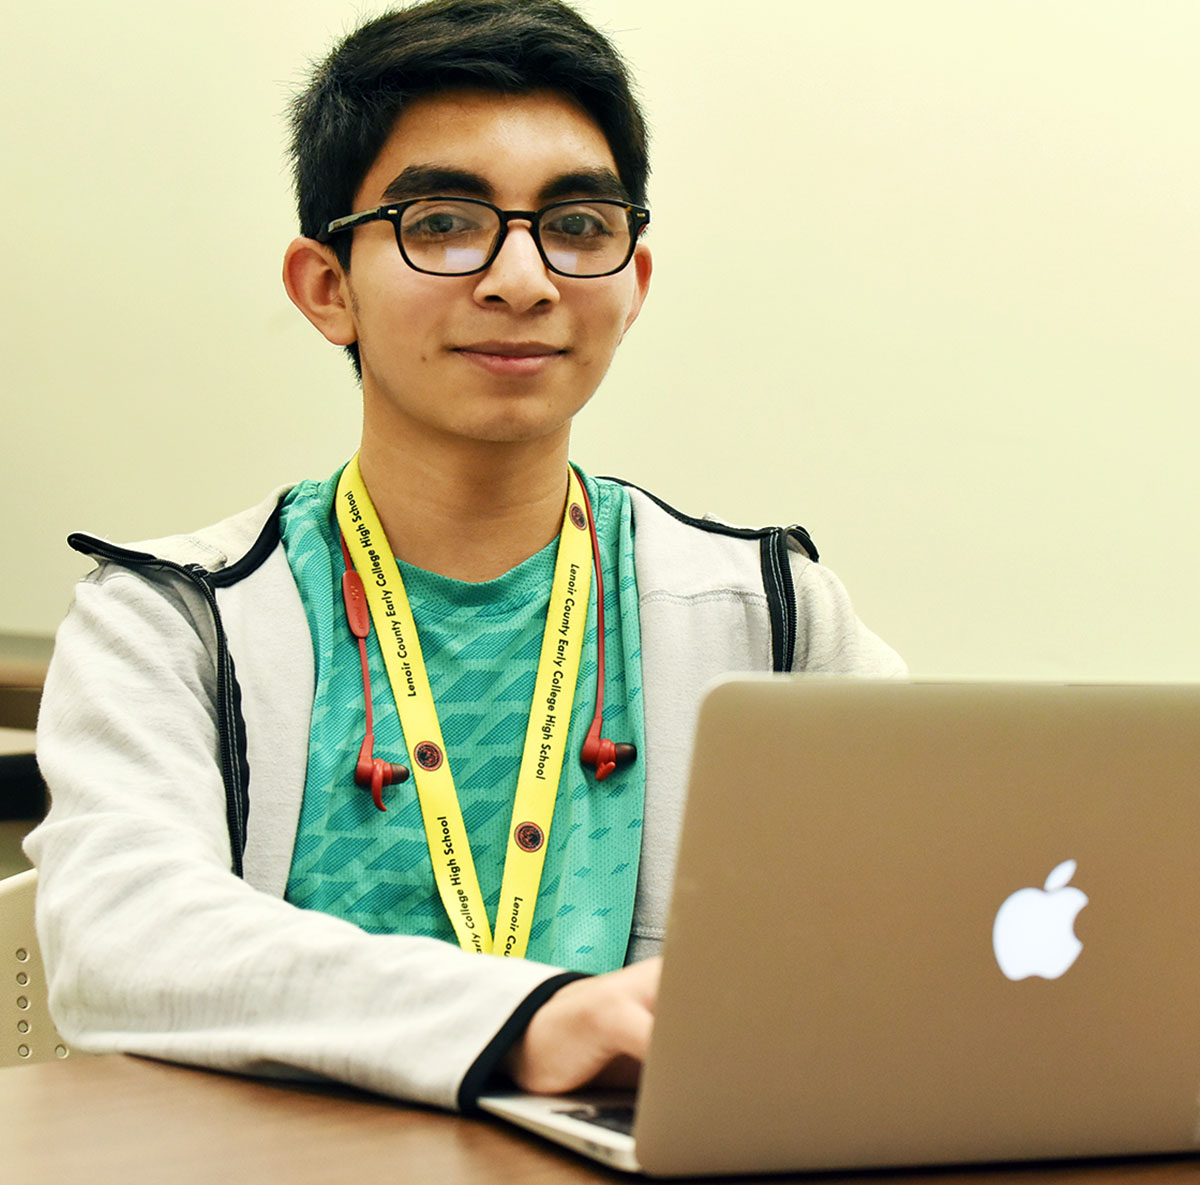 Moises Ramirez-Barron, in his second semester of coding instruction at Lenoir County Early College High School, will move into college-level coding classes next year as he prepares for a career as a computer engineer. Photo by Patrick Holmes / LCPS